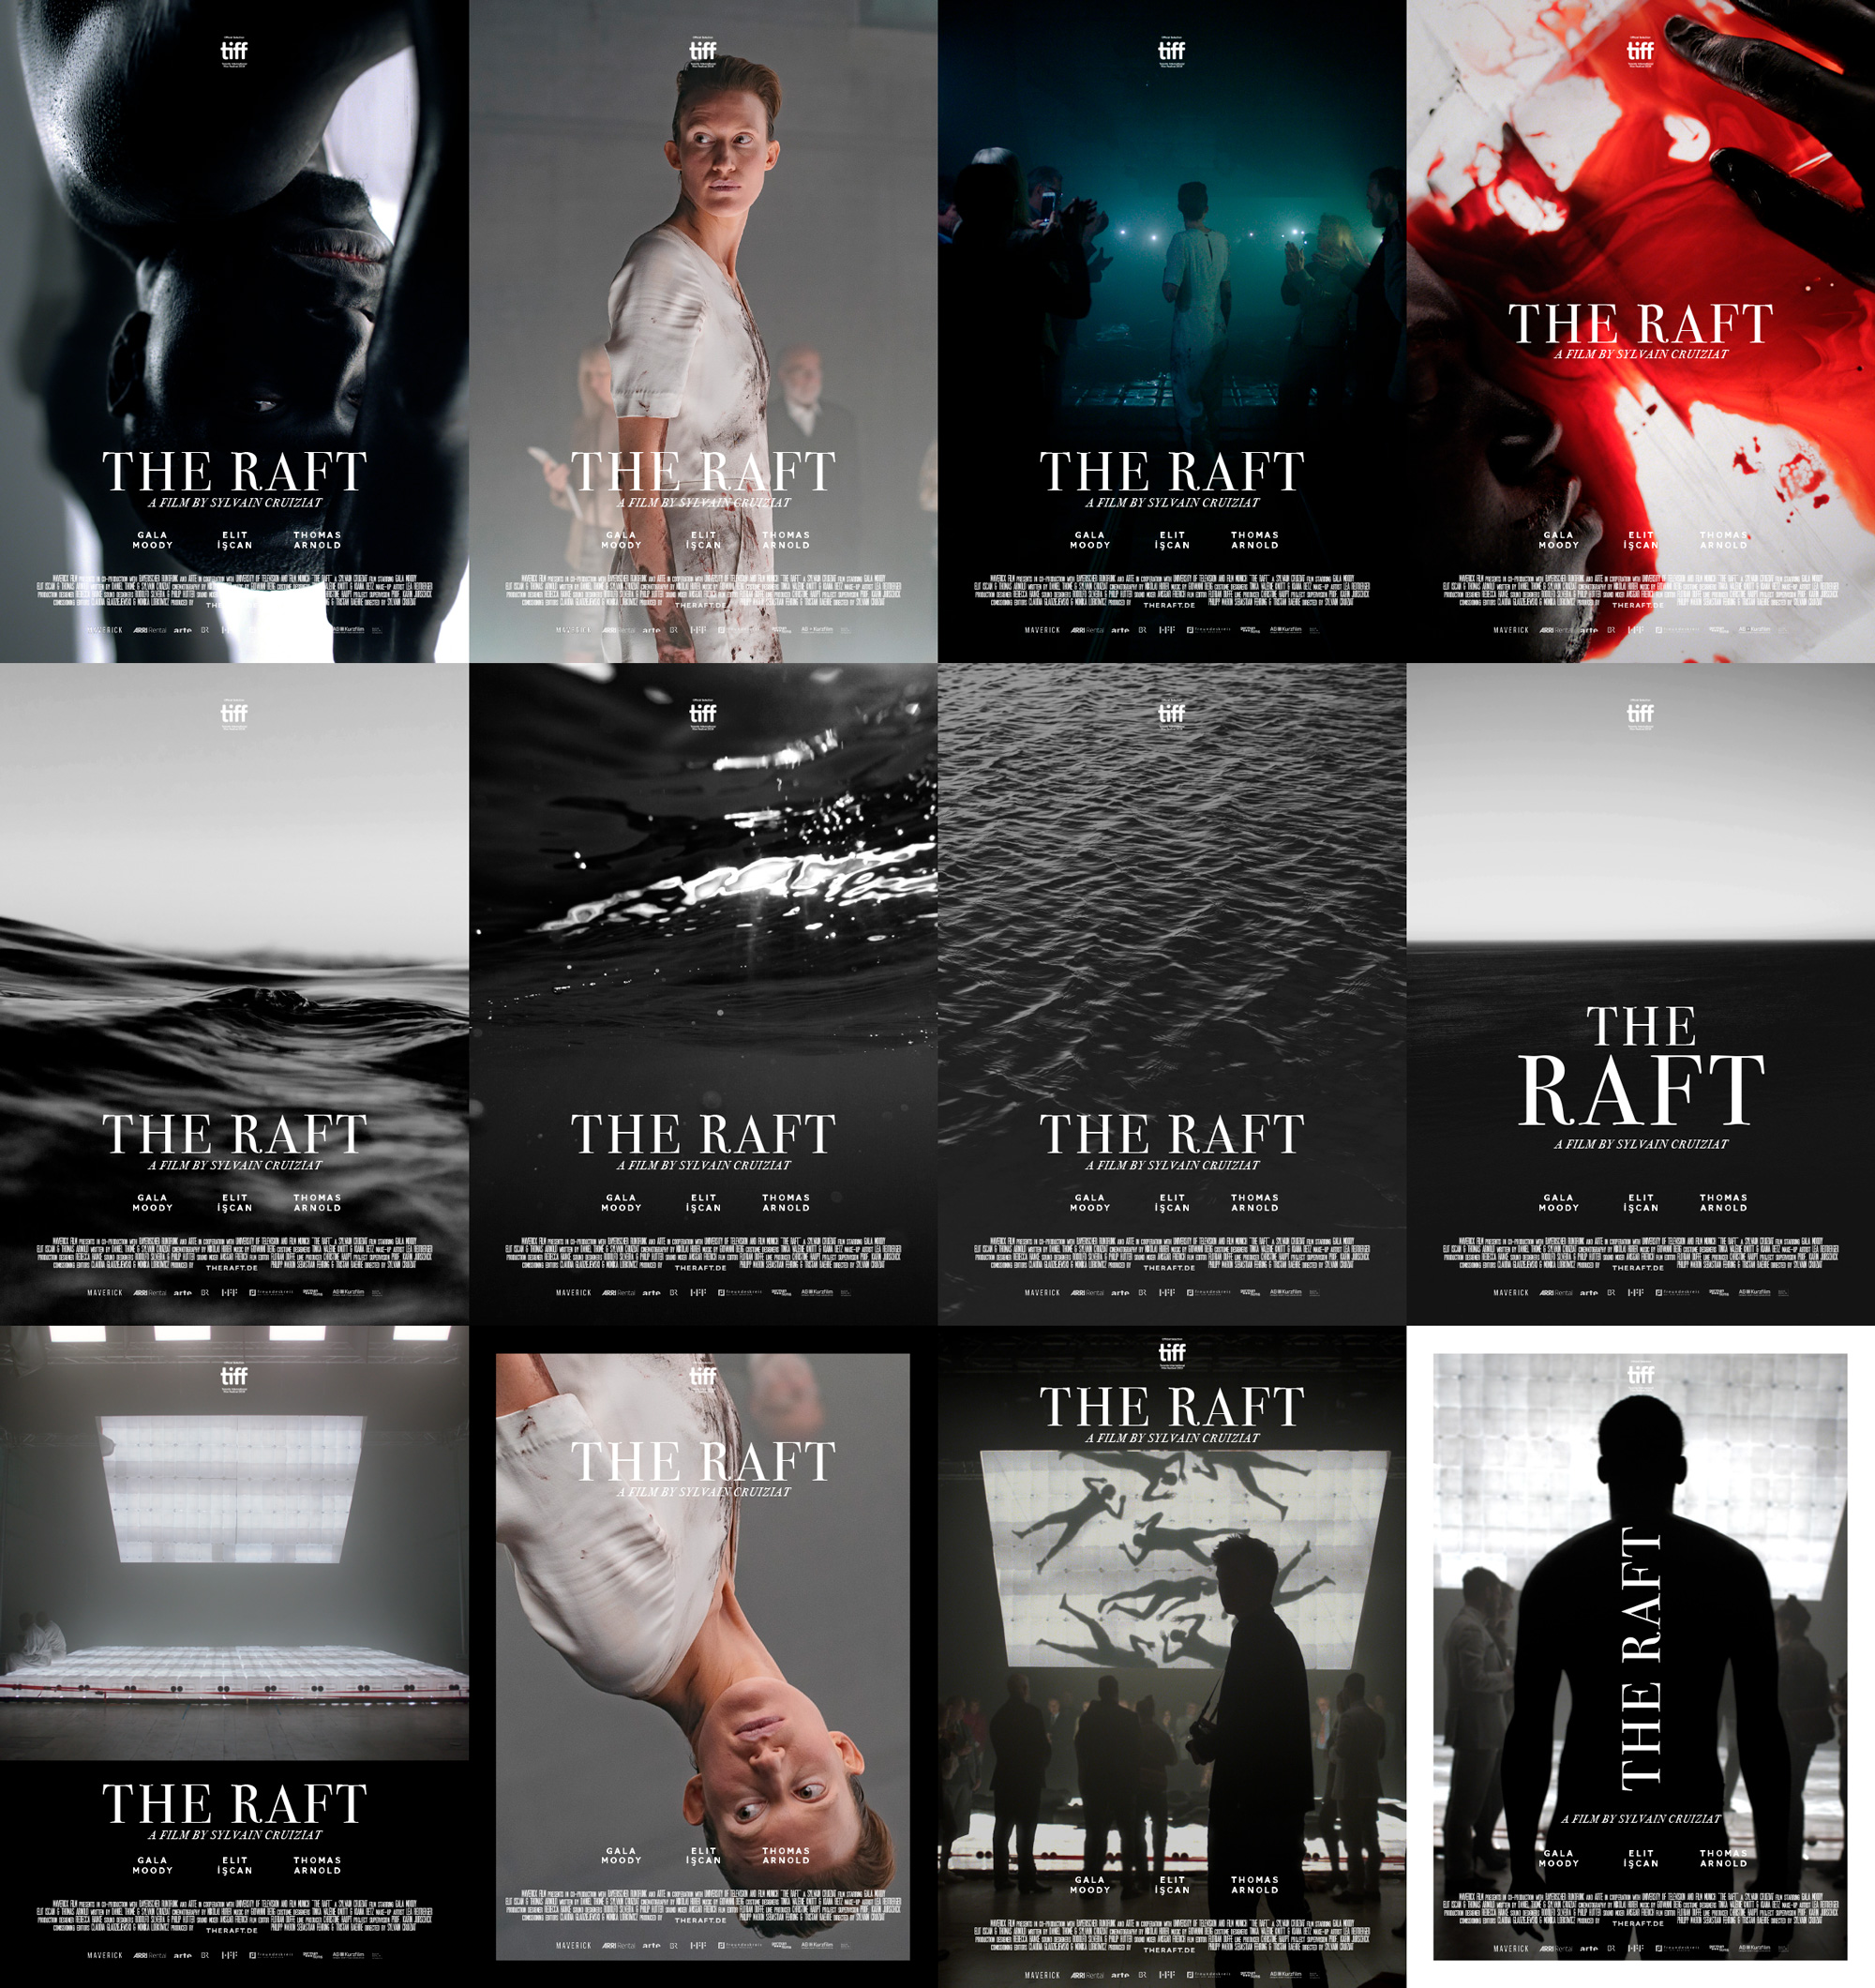 The Raft movie poster designed by Tobias Heumann